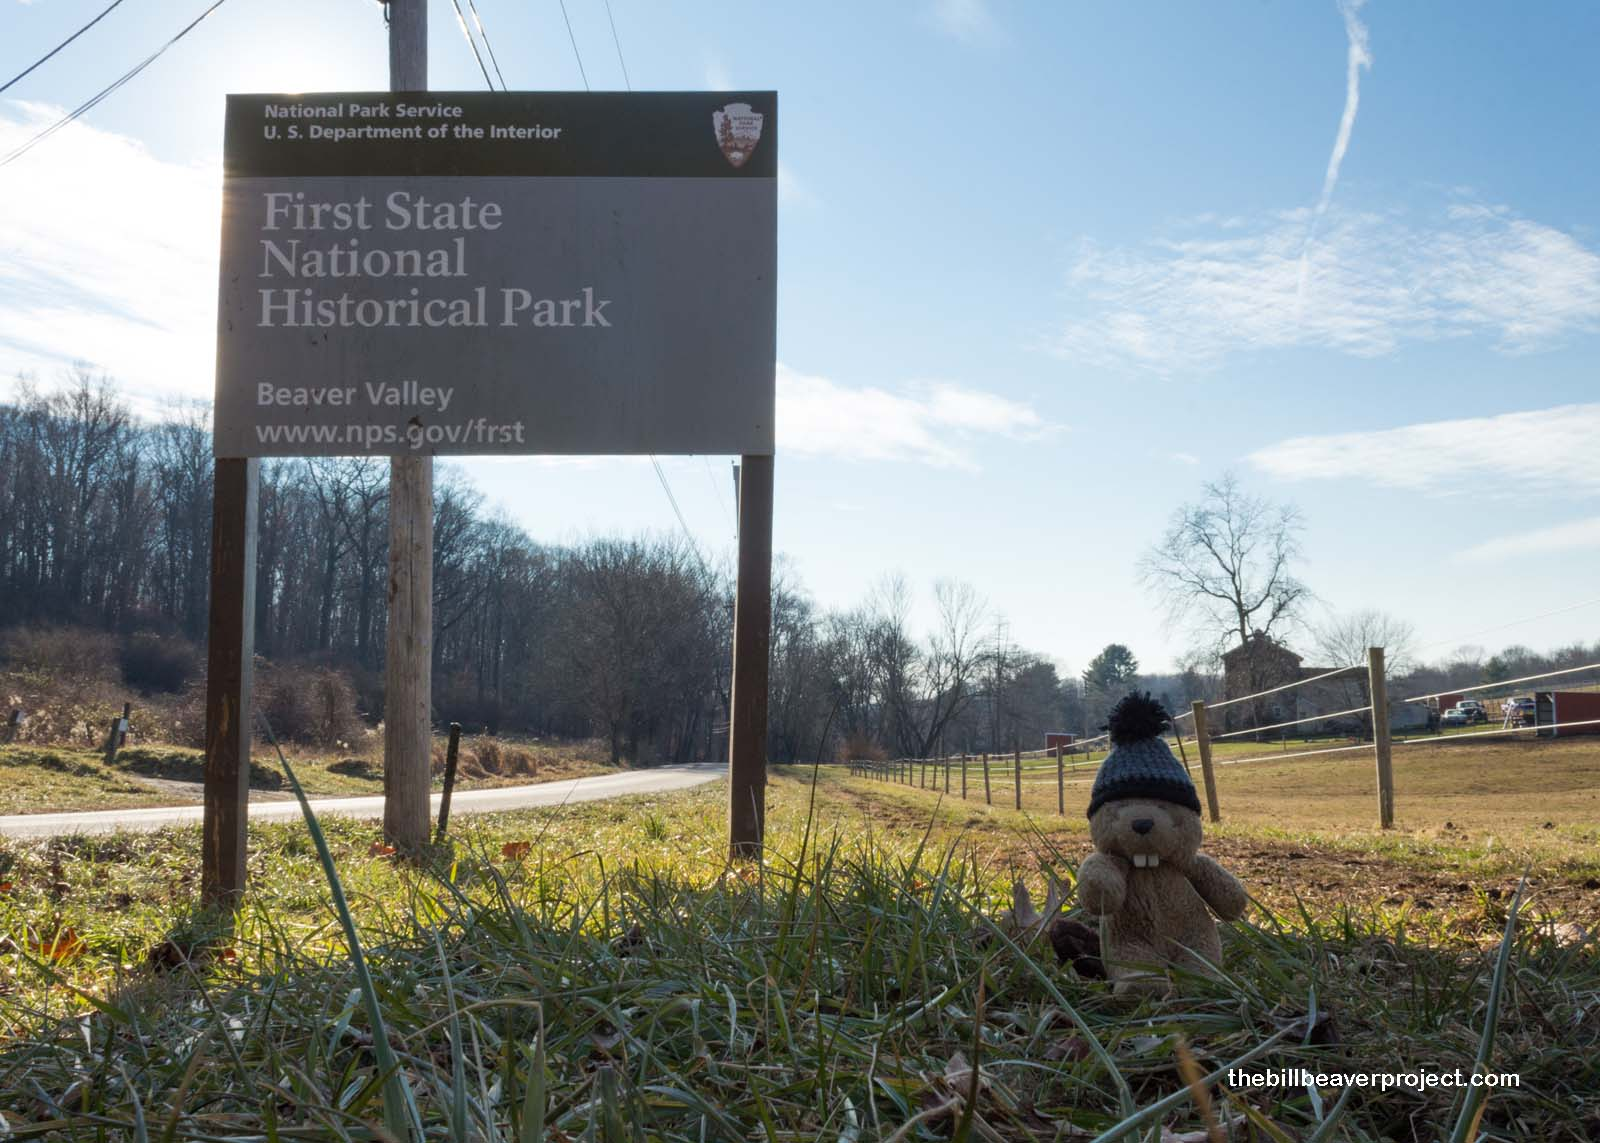 First State National Historical Park